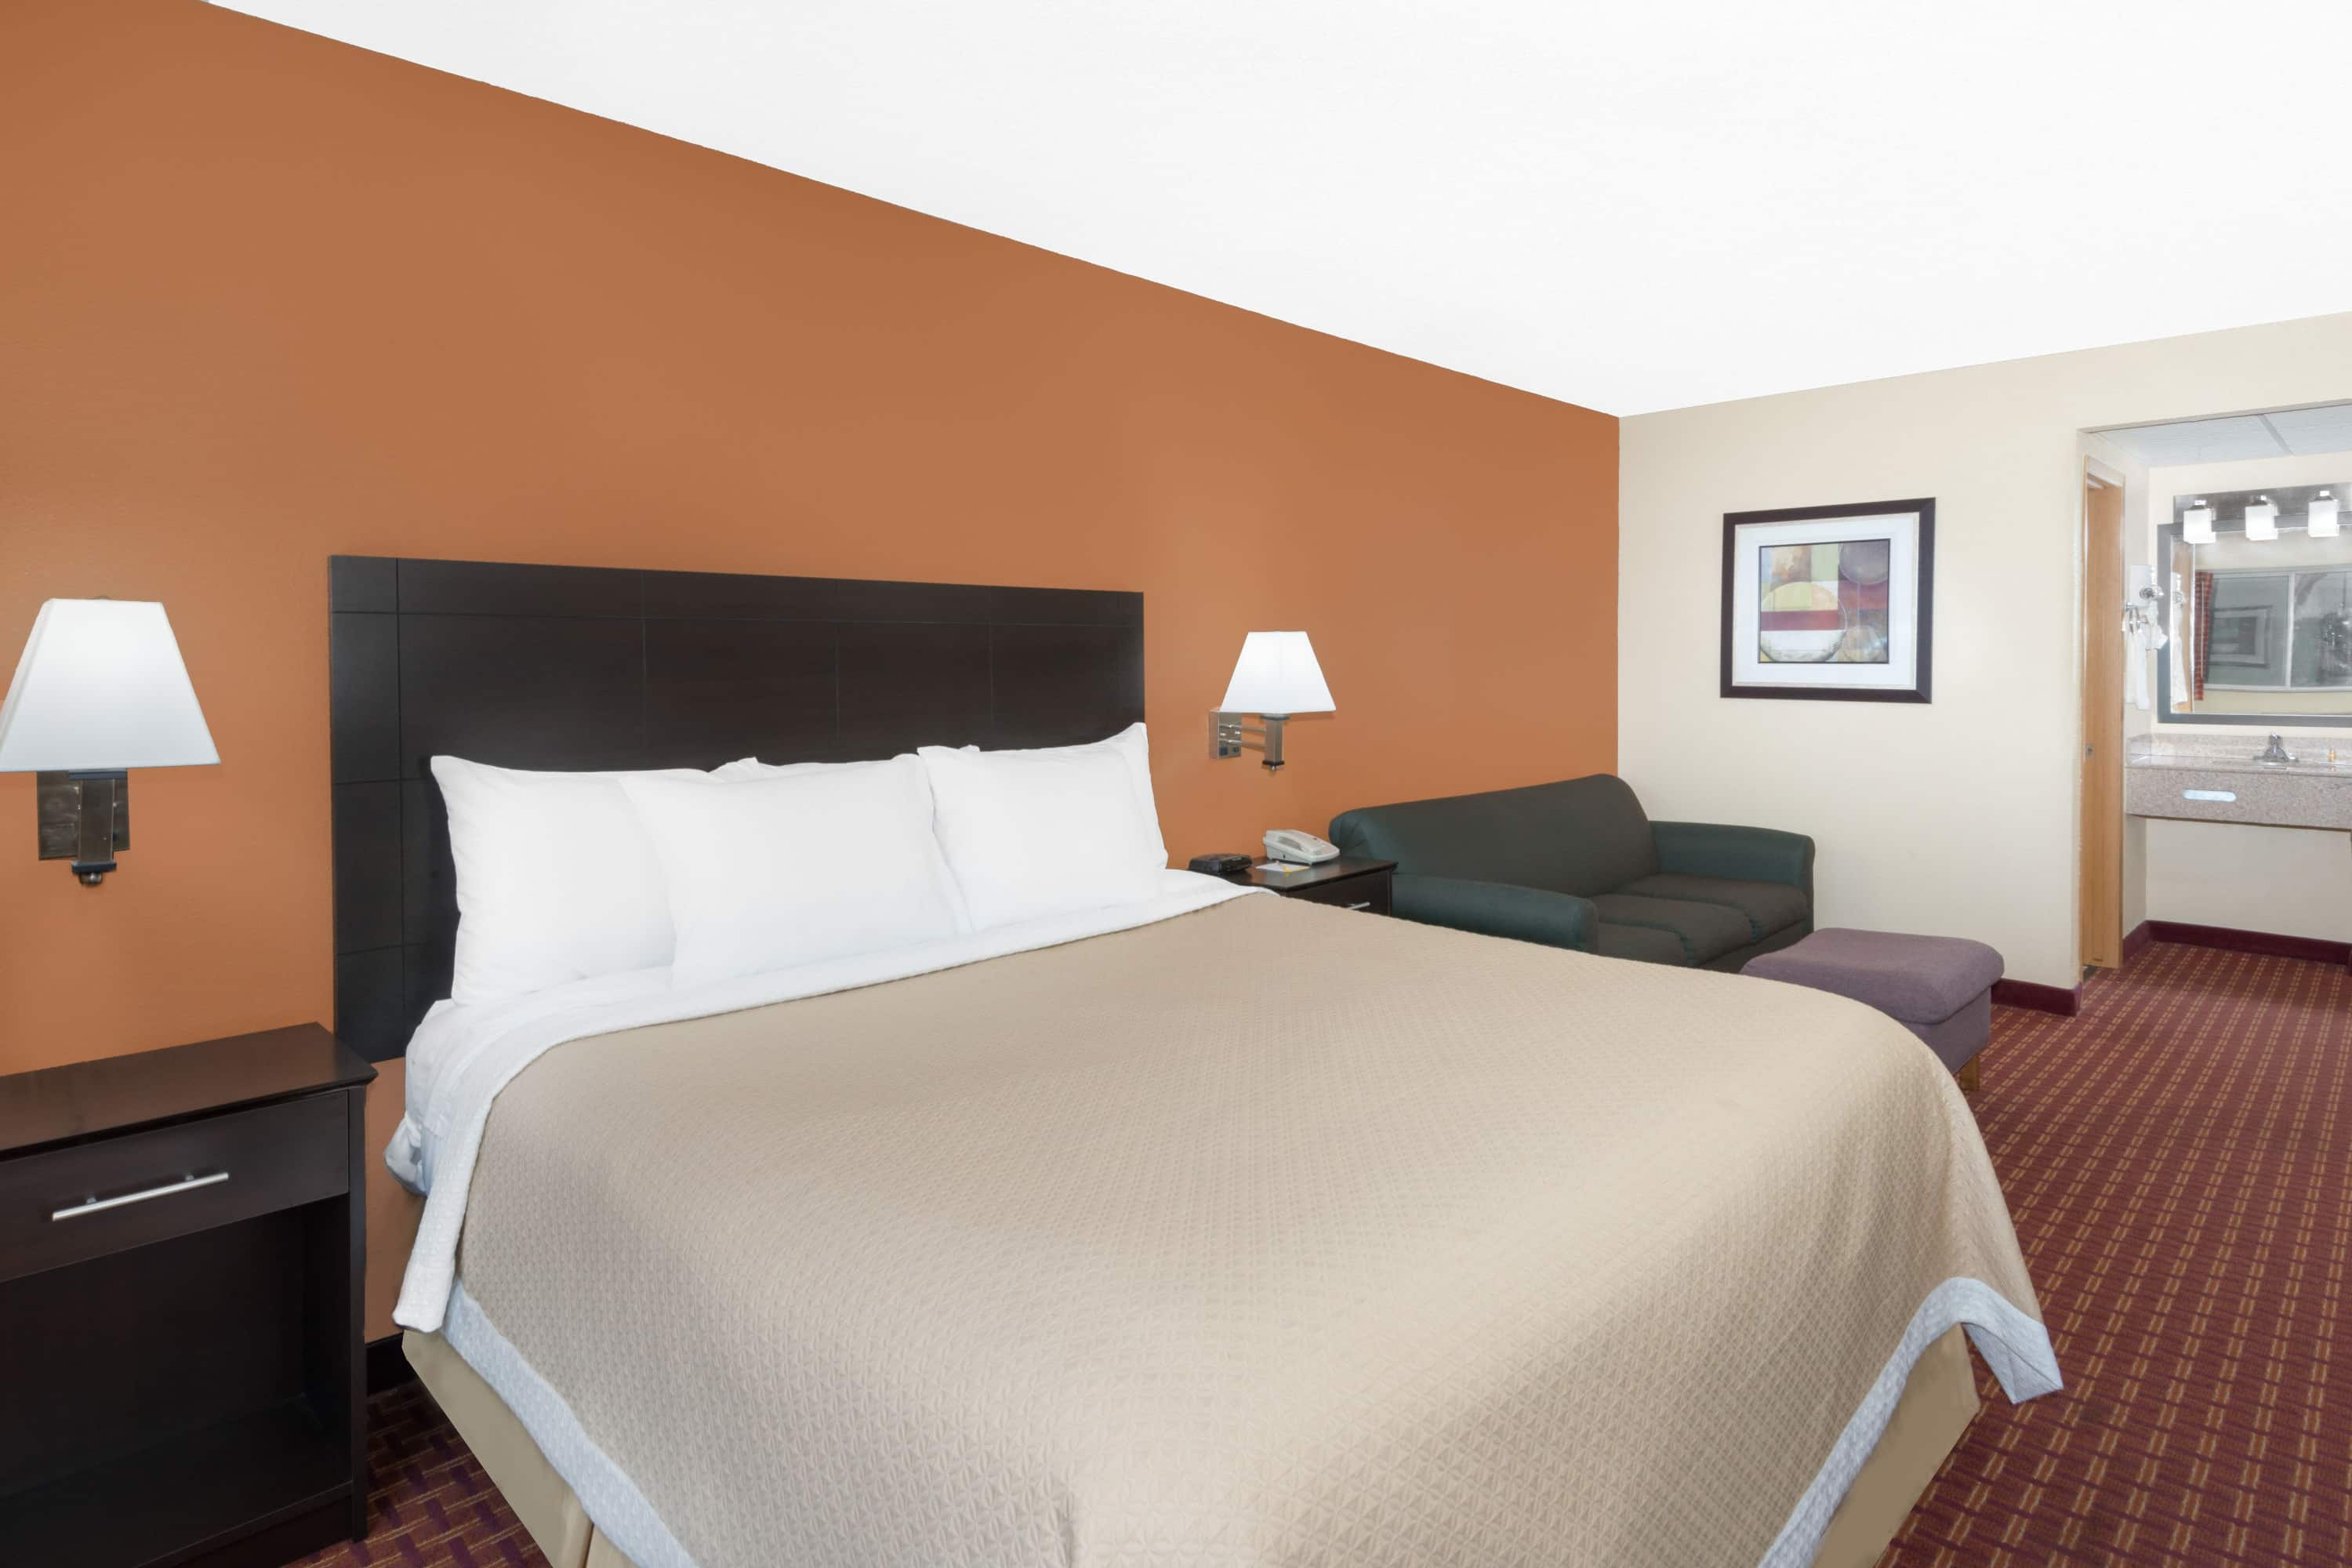 Guest room at the Days Inn Ames in Ames, Iowa